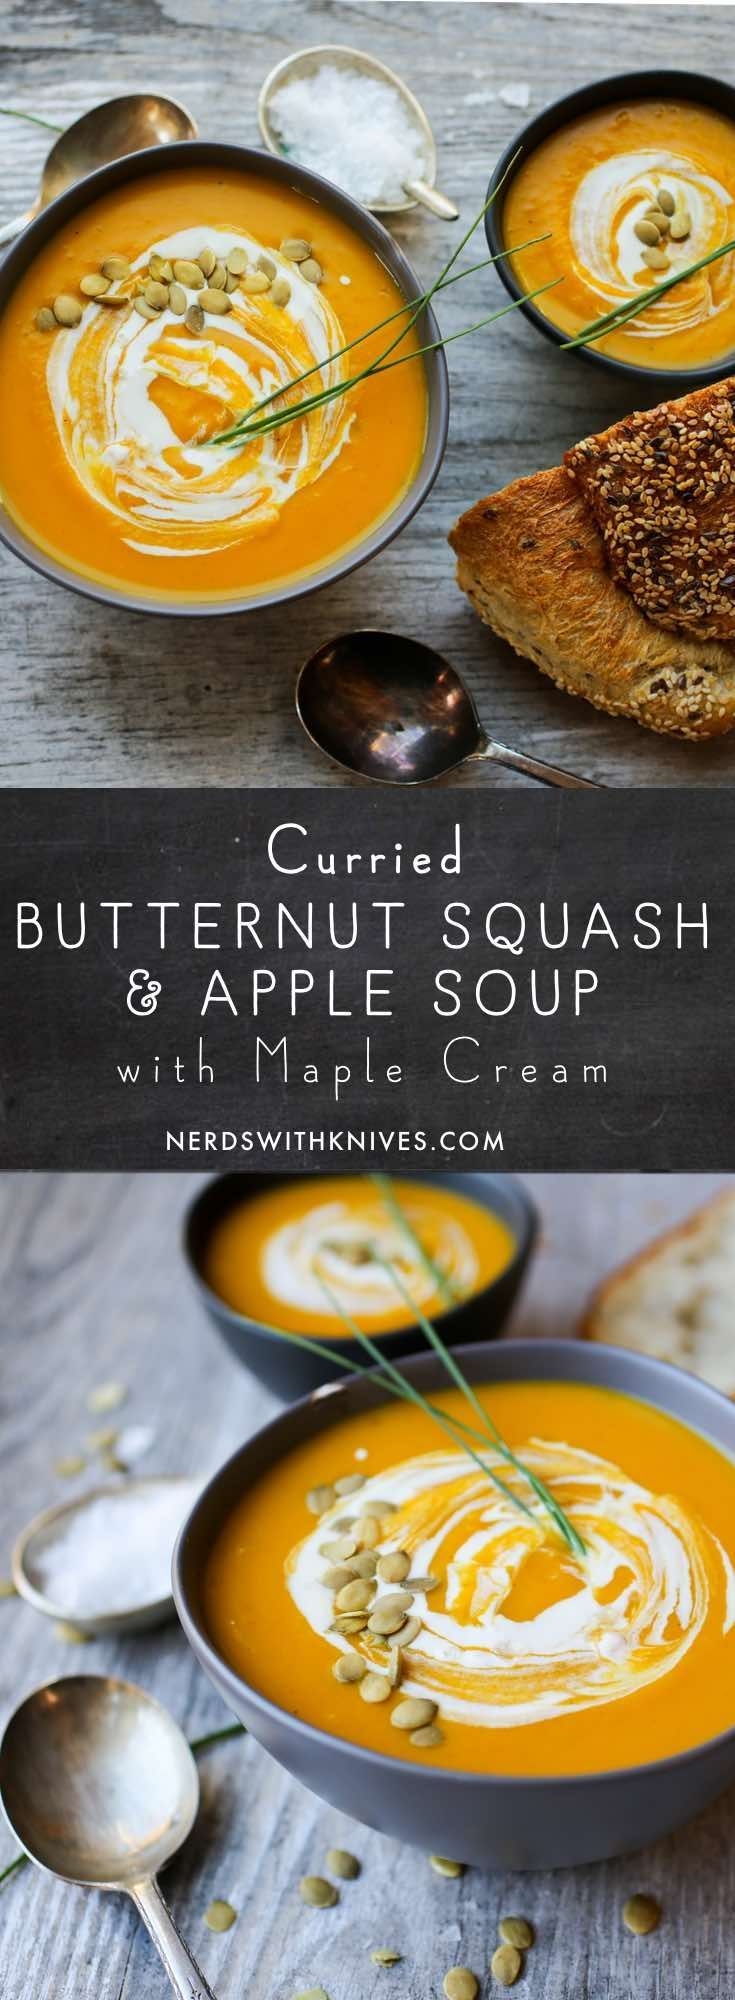 Curried Butternut Squash and Apple Soup with Maple Cream - Nerds with Knives